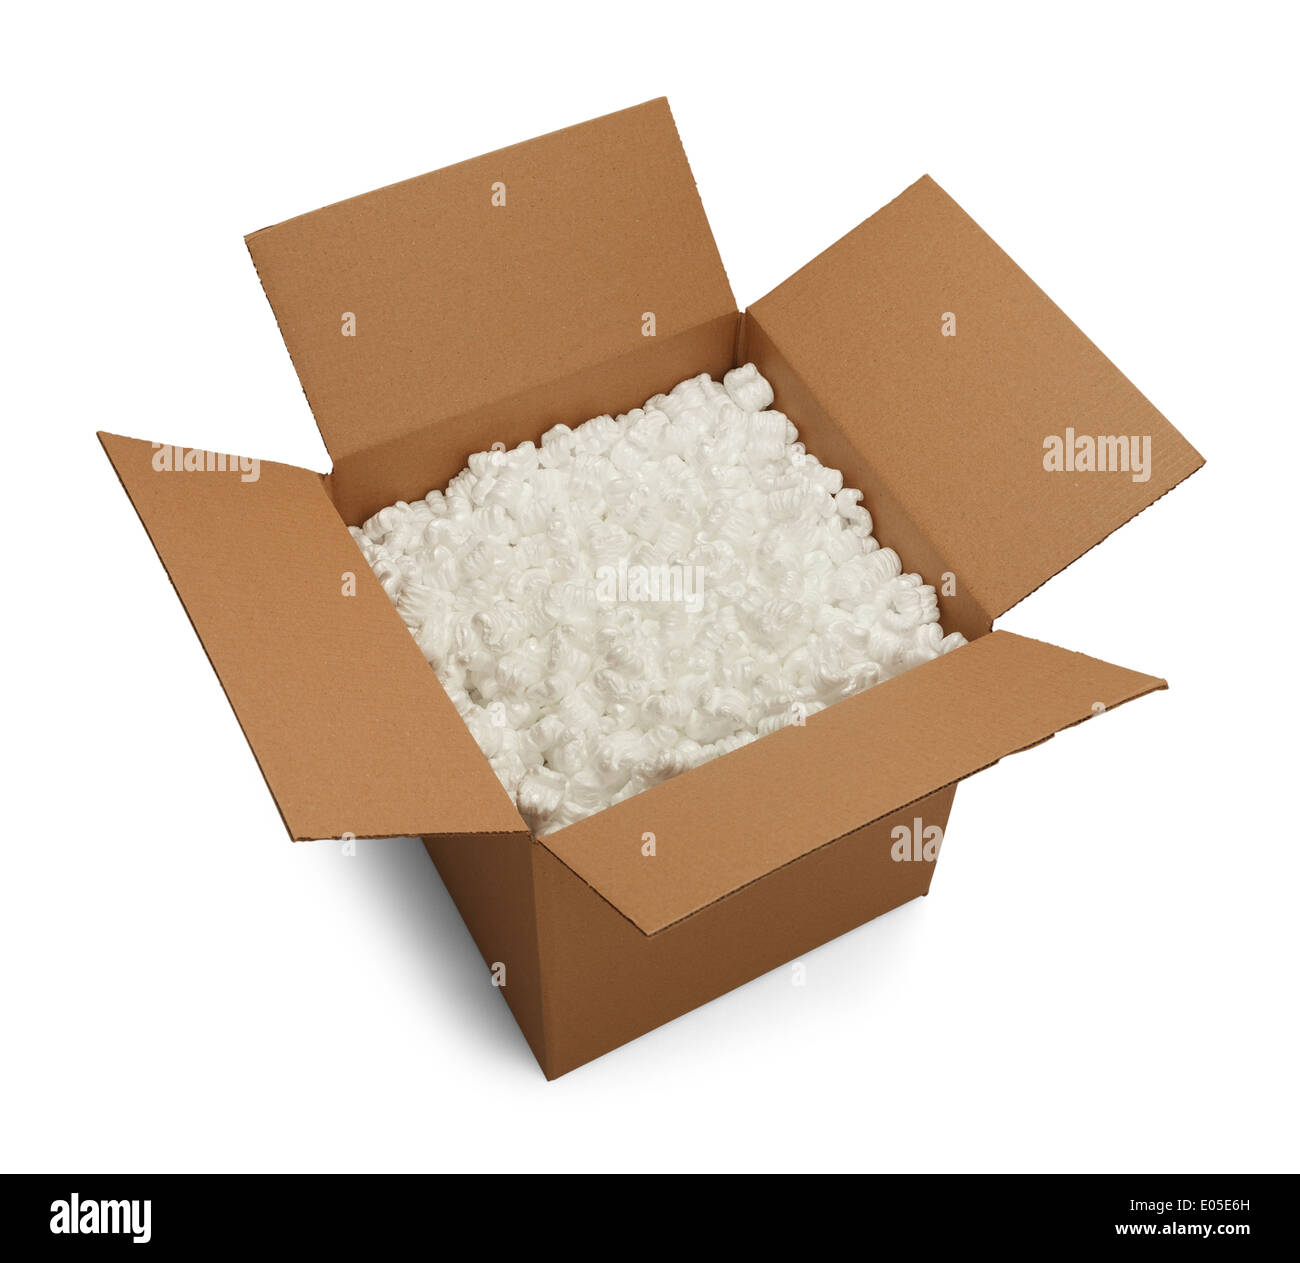 Open Brown Cardboard Box with Packing Peanuts Inside Isolated on White Background. - Stock Image